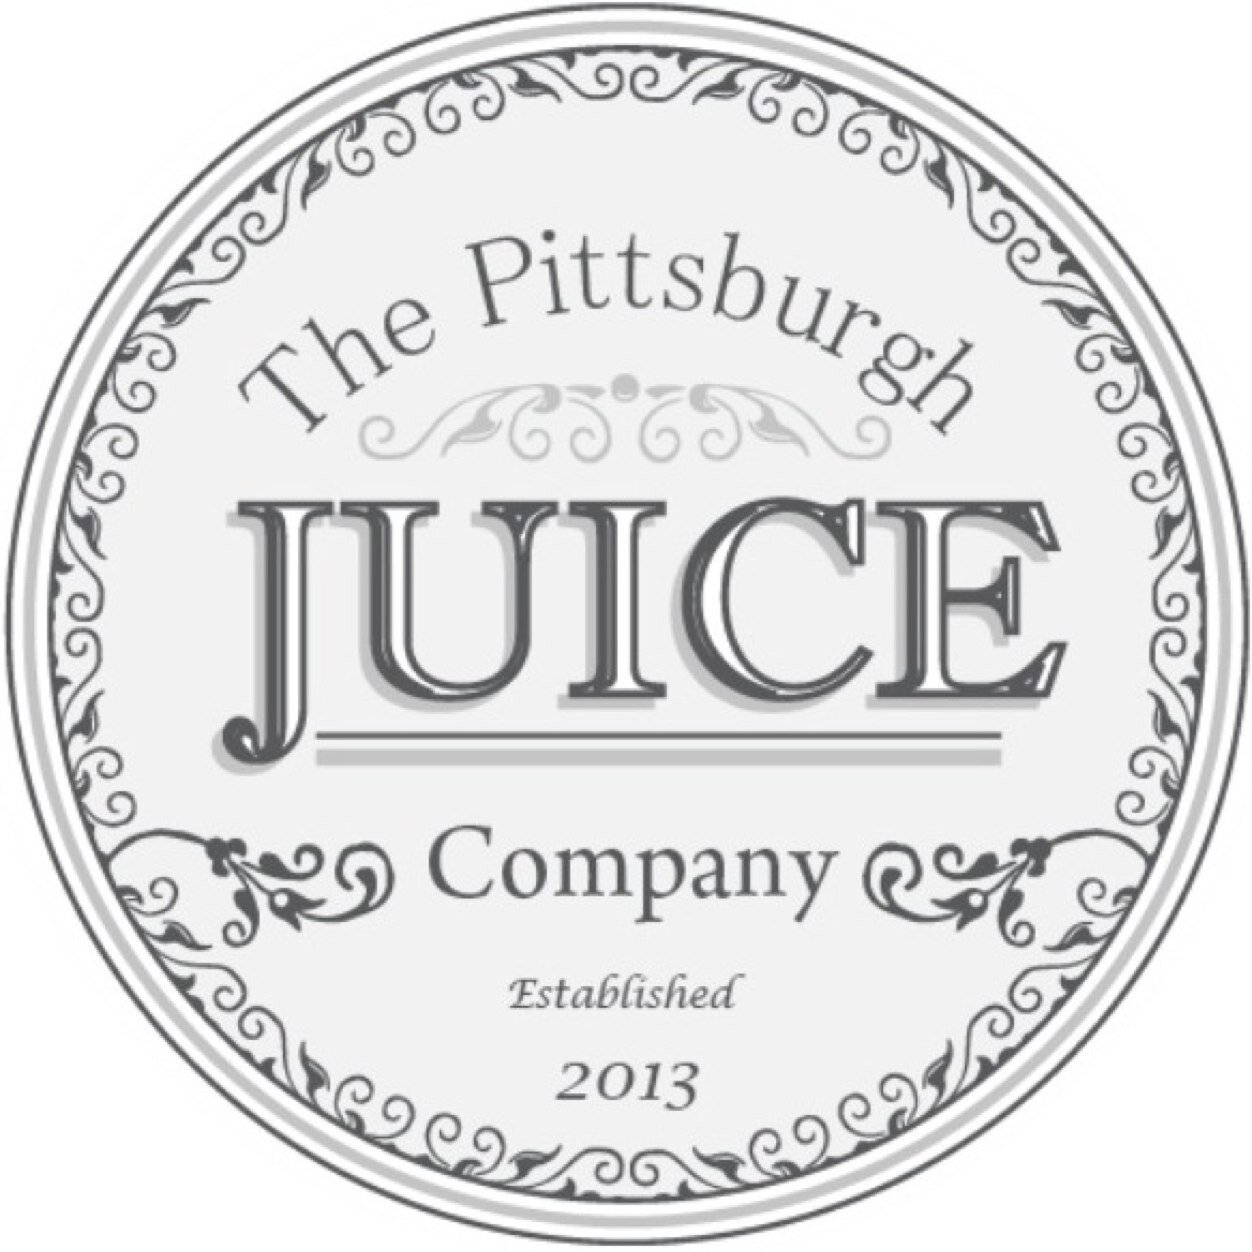 The Pittsburgh Juice Company Logo.jpeg